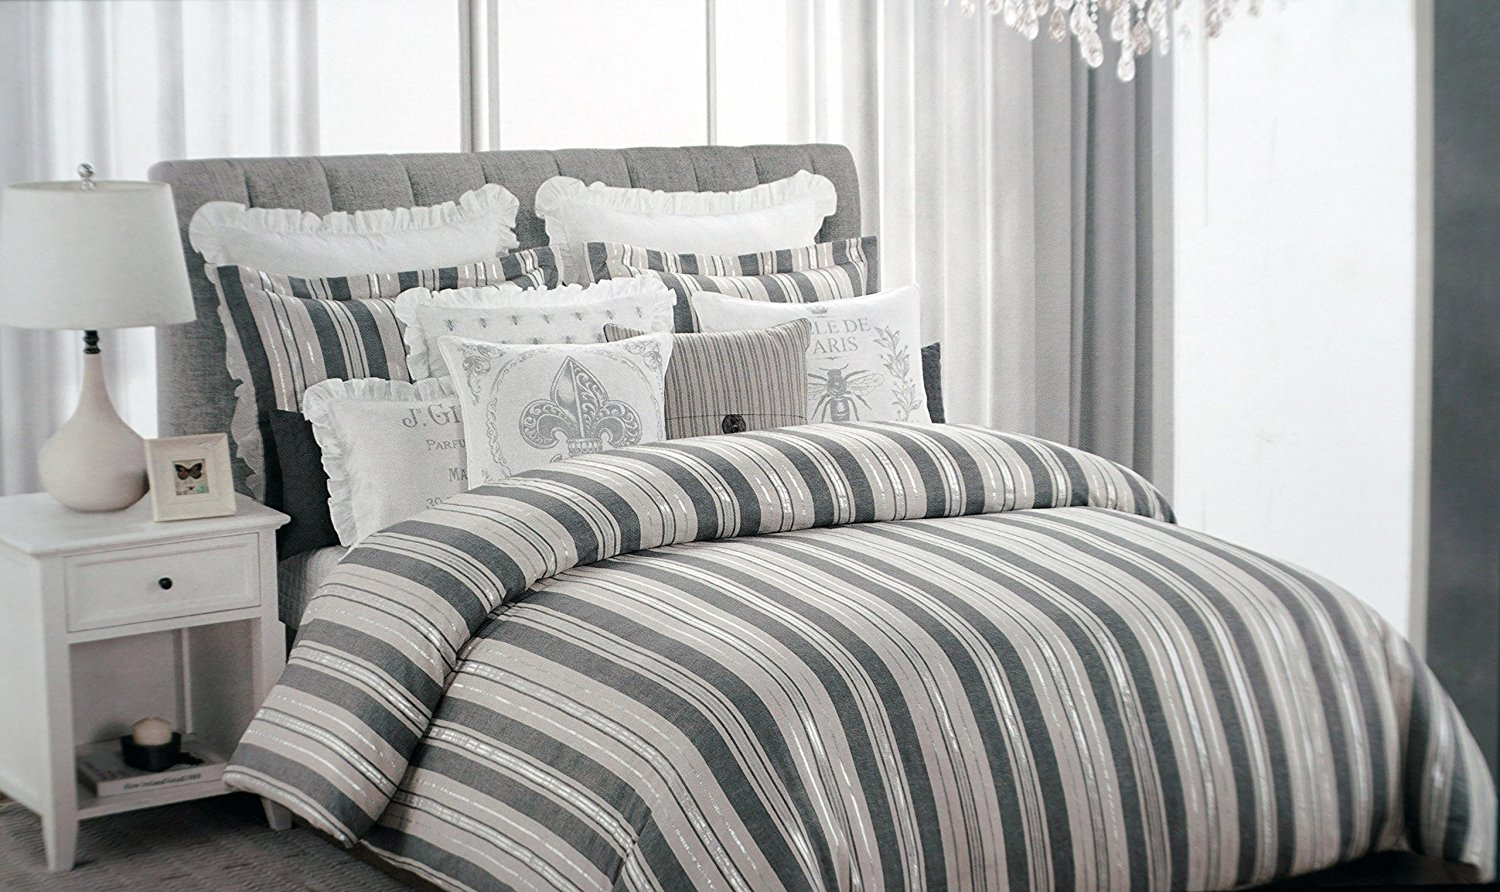 Nicole Miller Bedding 3 Piece King Duvet Cover Set Retro Gray Silver Cream Stripes